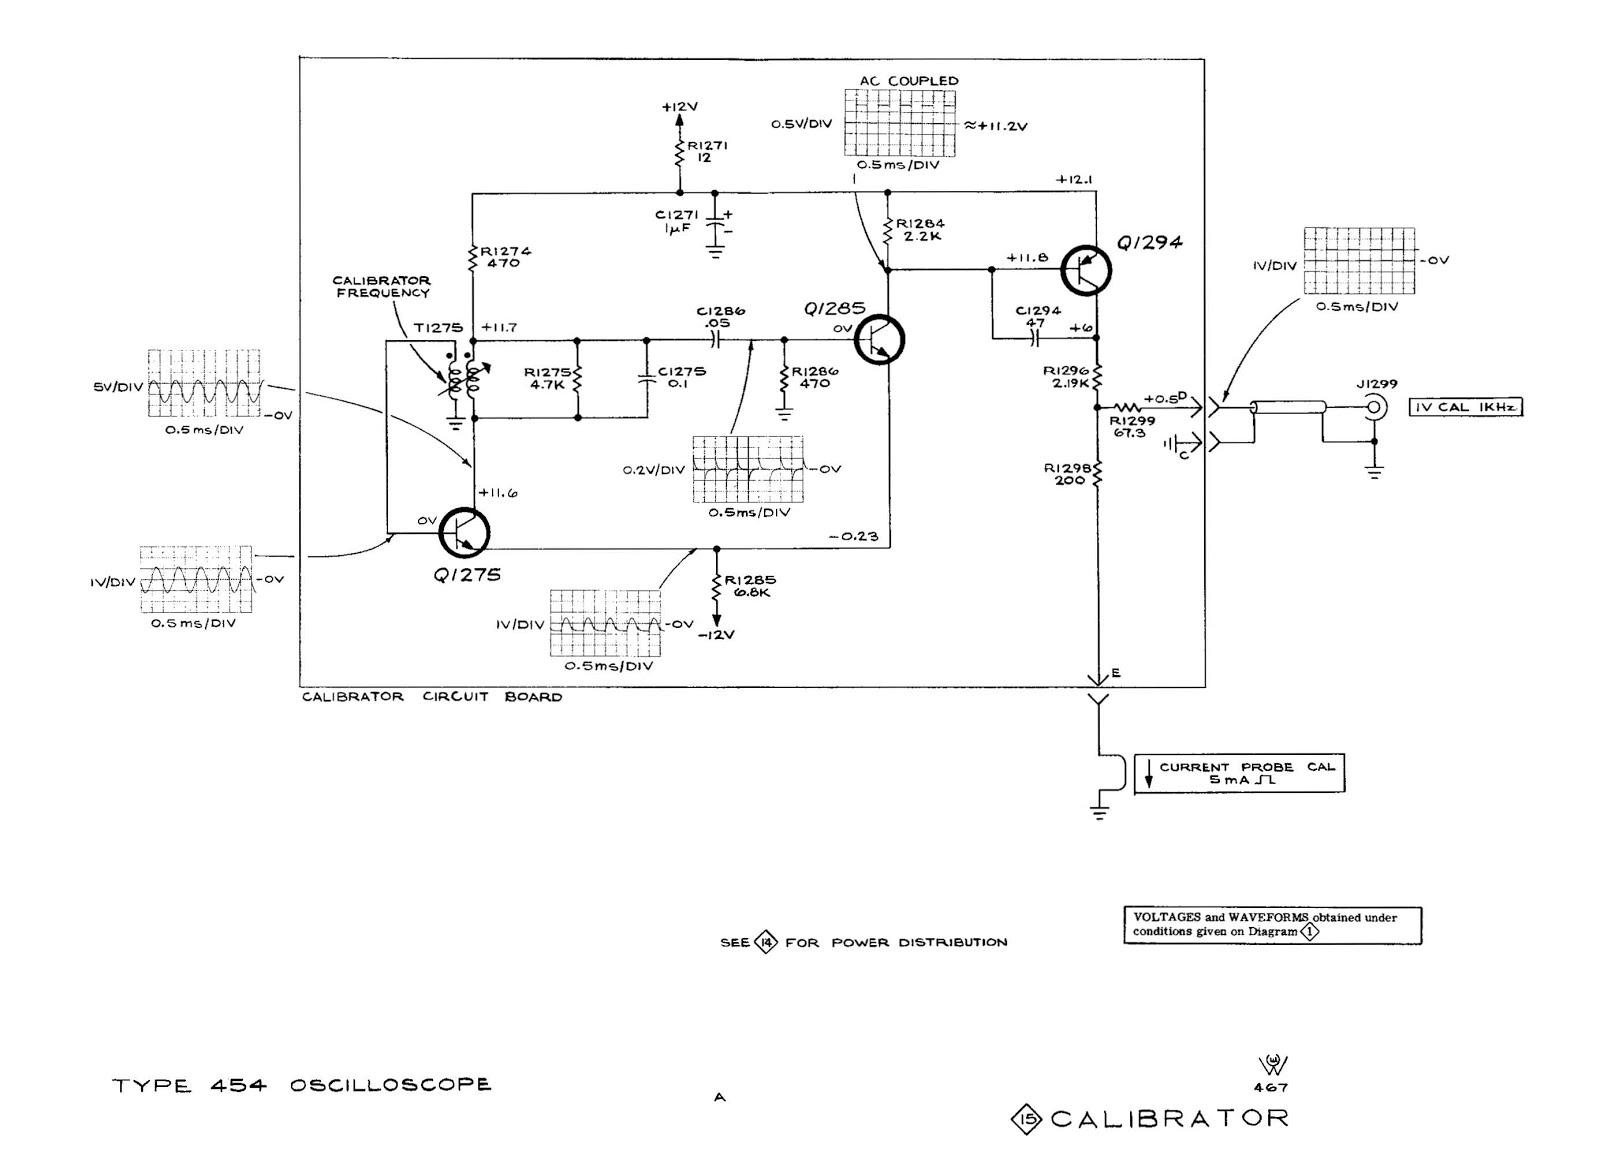 Wiring Diagram For Apple Magsafe : Magsafe wiring diagram ssd